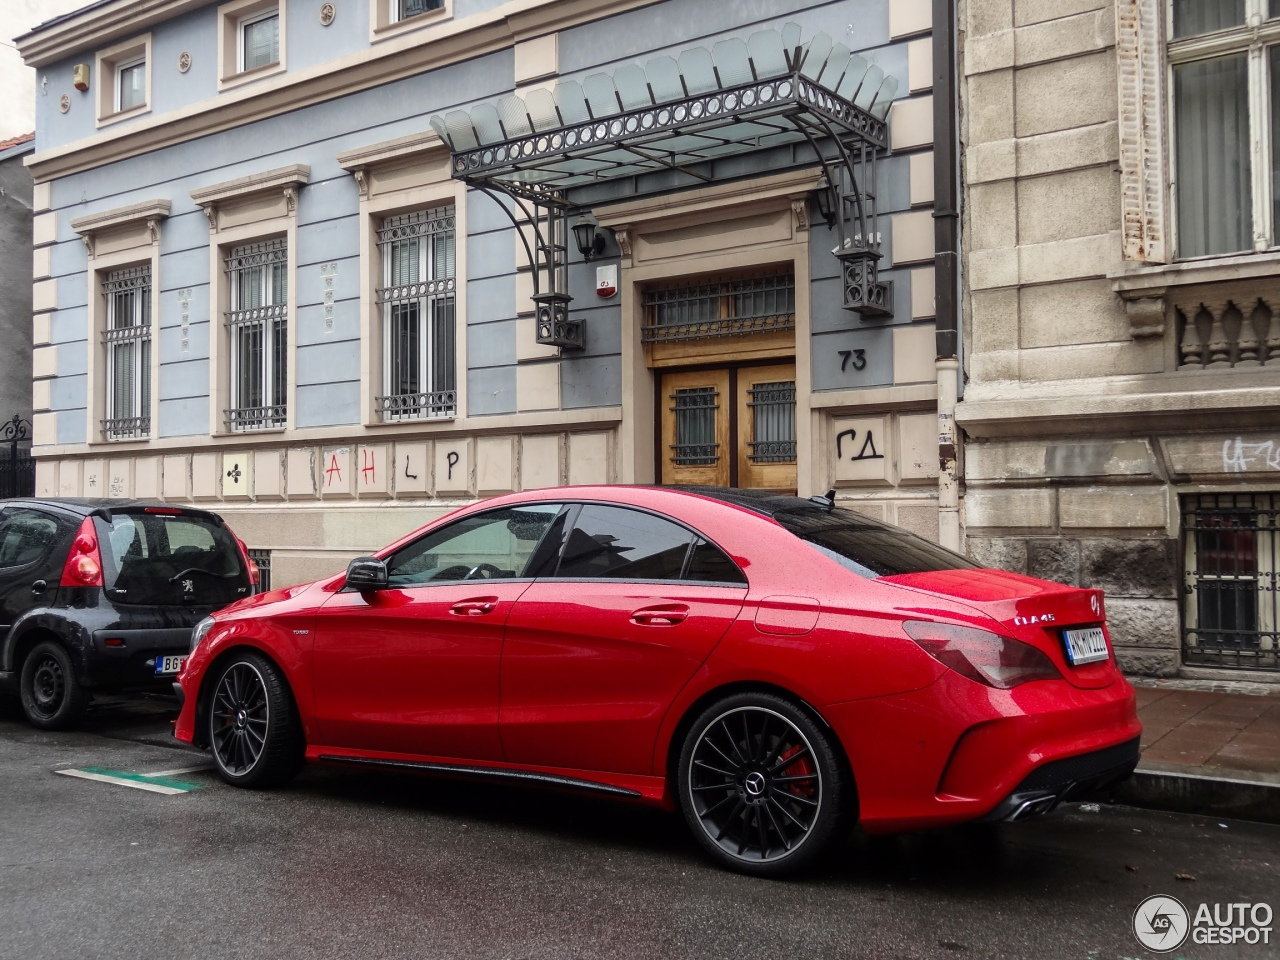 mercedes benz cla 45 amg c117 19 january 2015 autogespot. Cars Review. Best American Auto & Cars Review